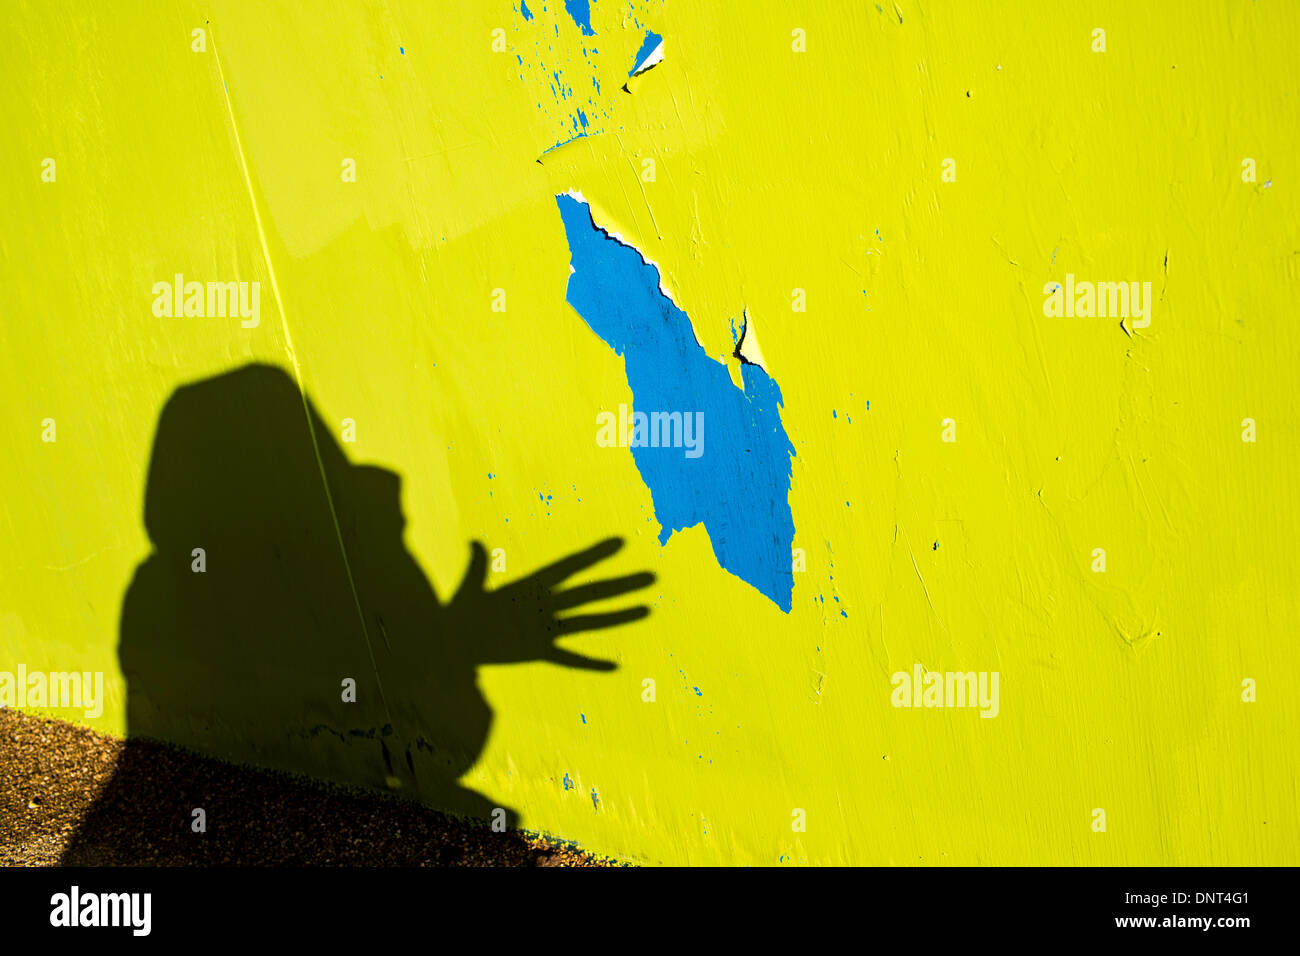 Shadow Art Wall Hand Stock Photos & Shadow Art Wall Hand Stock ...